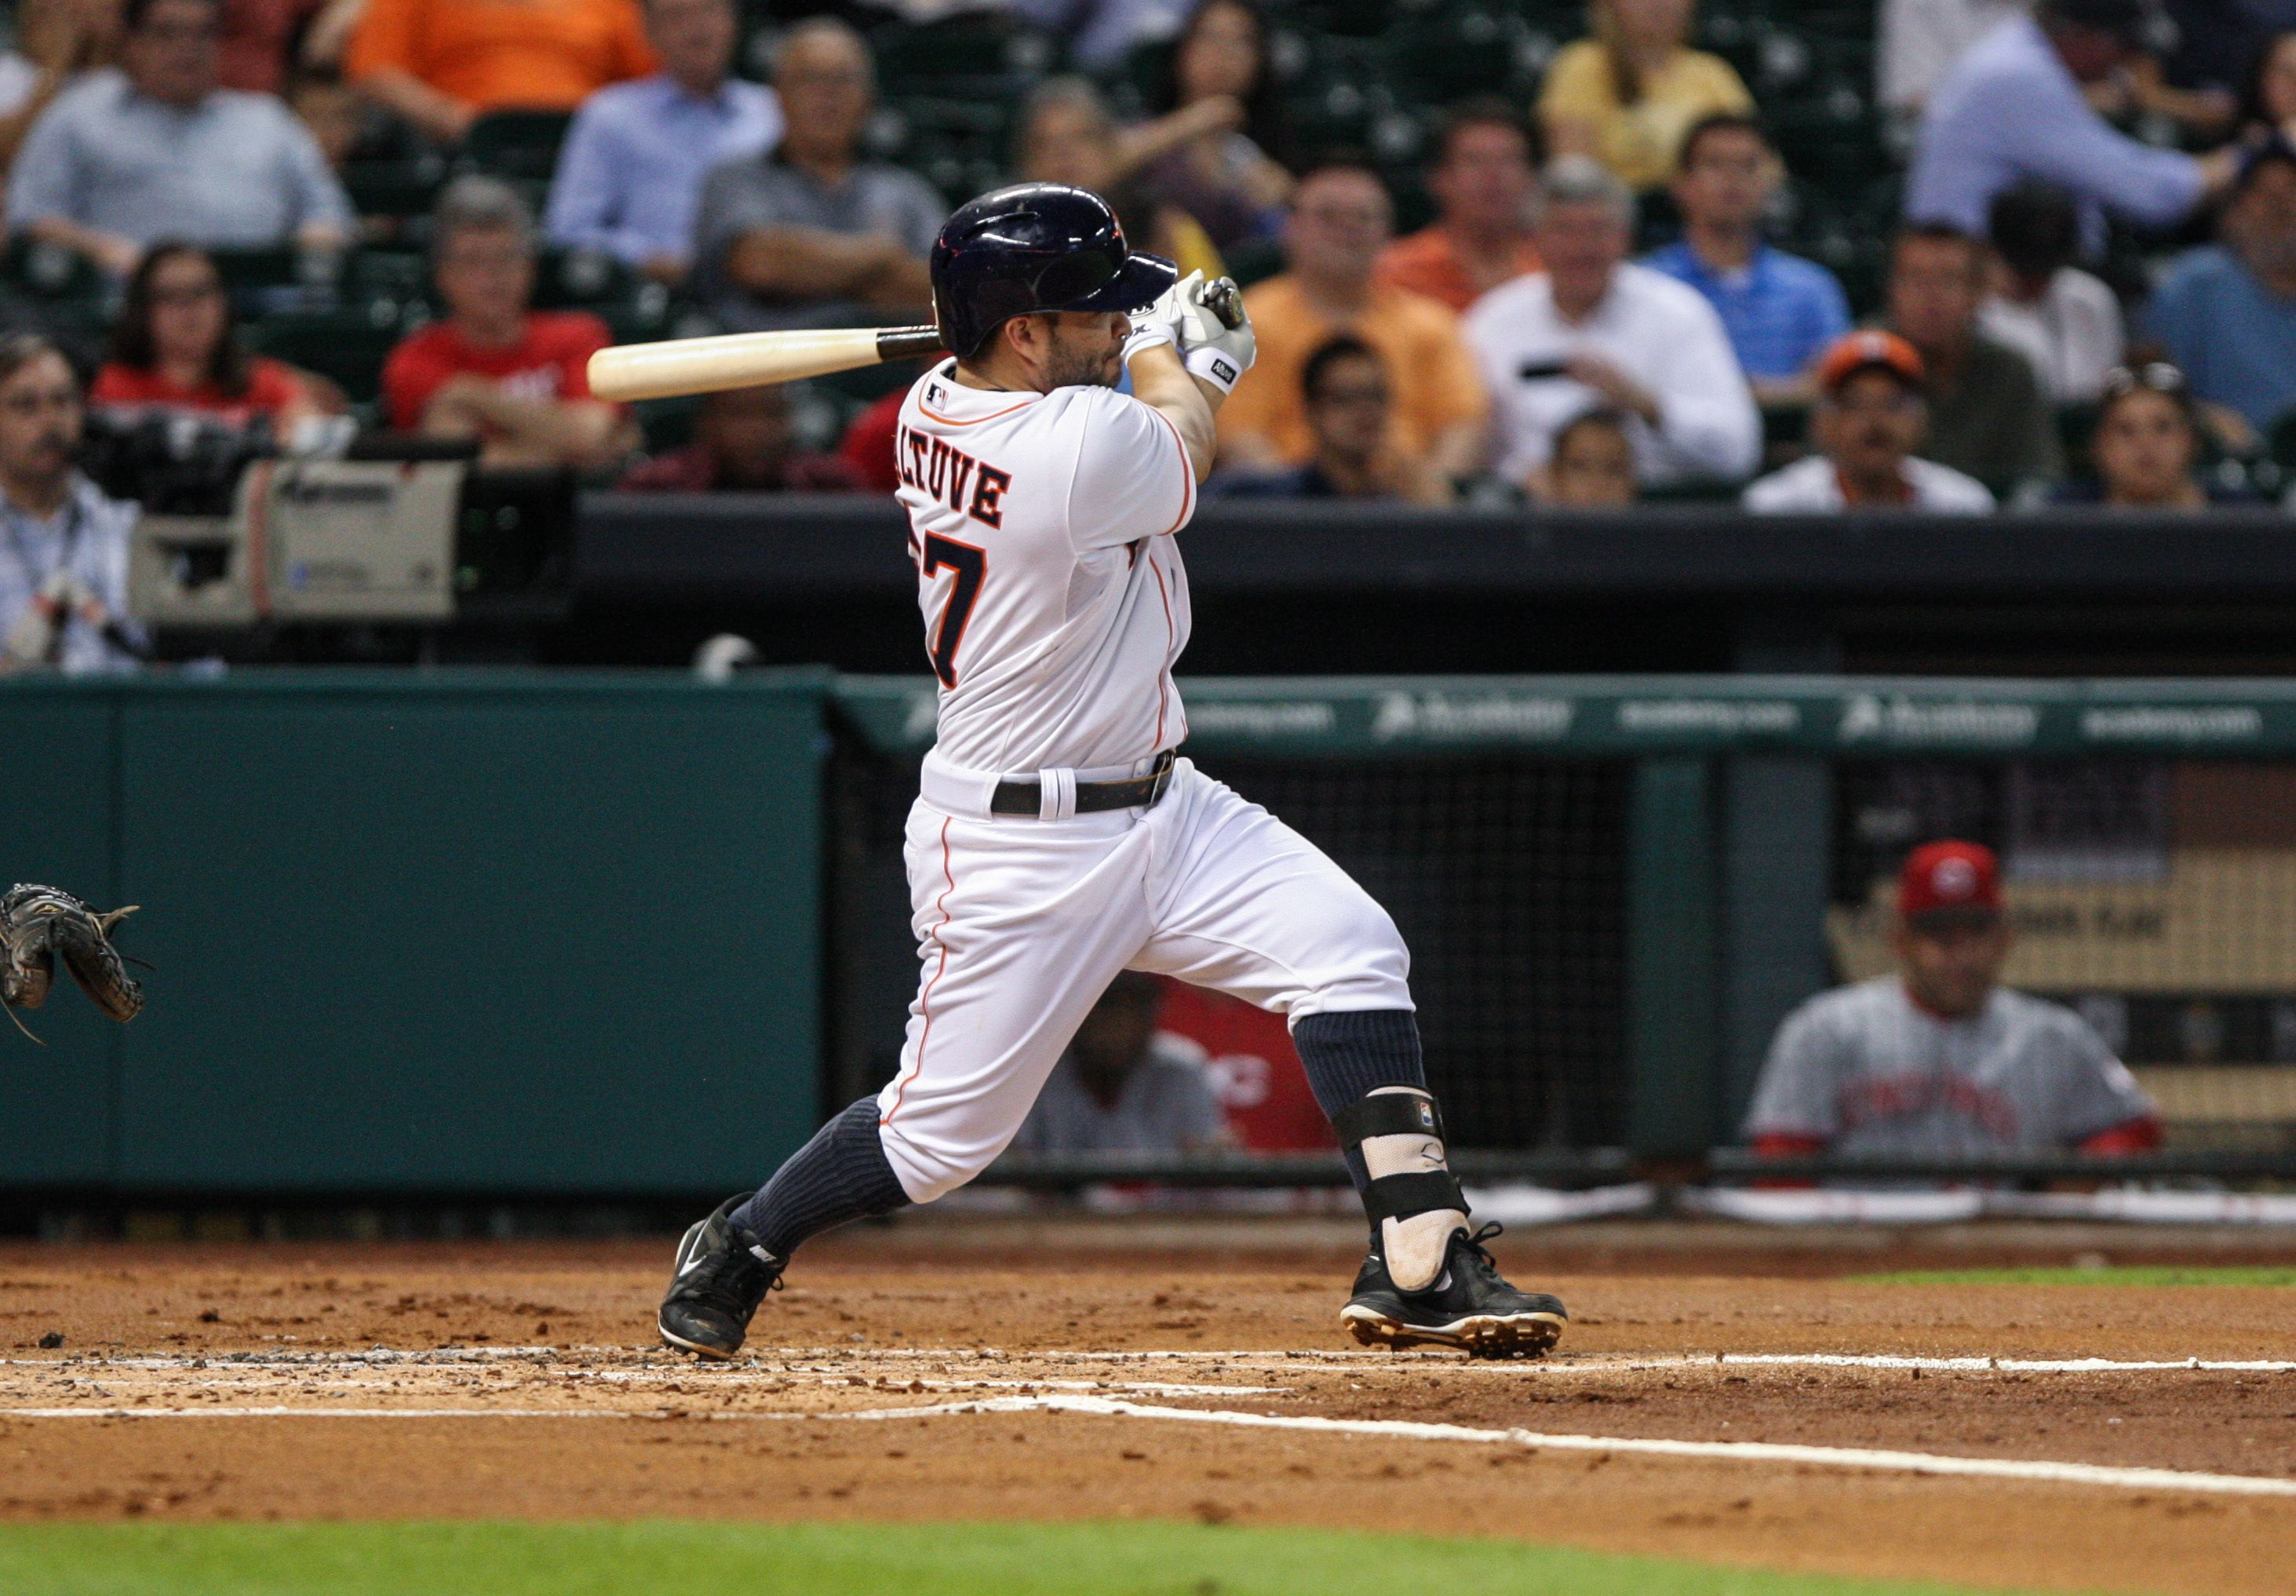 CrowdCam Hot Shot: Houston Astros second baseman Jose Altuve gets a double during the first inning against the Cincinnati Reds at Minute Maid Park. Photo by Troy Taormina